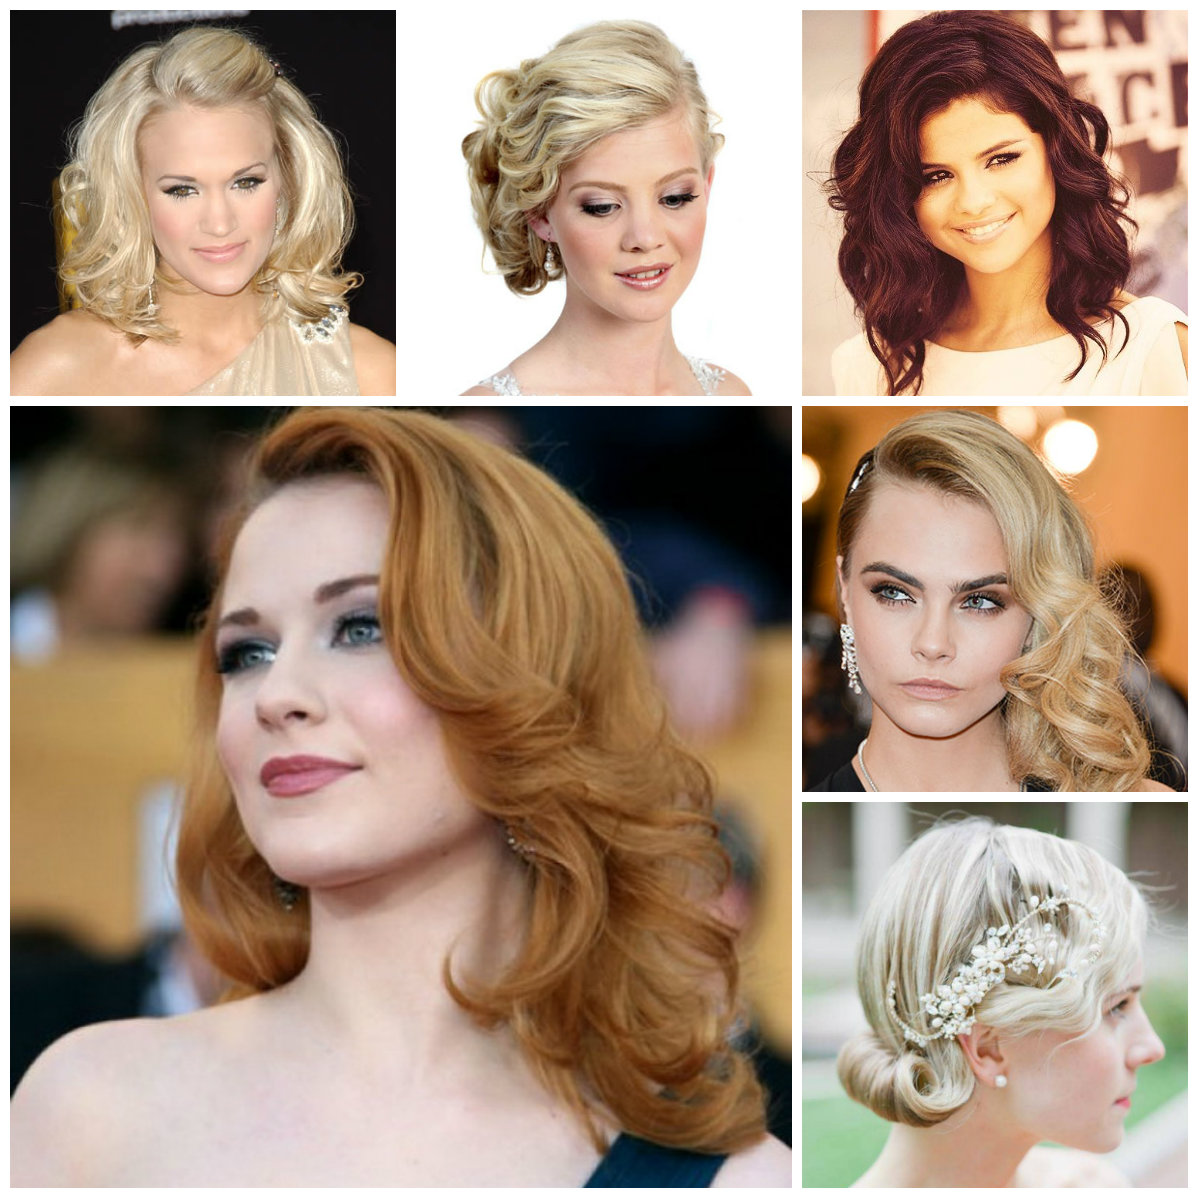 Enjoyable Prom Hairstyles 2017 Haircuts Hairstyles And Hair Colors Short Hairstyles For Black Women Fulllsitofus